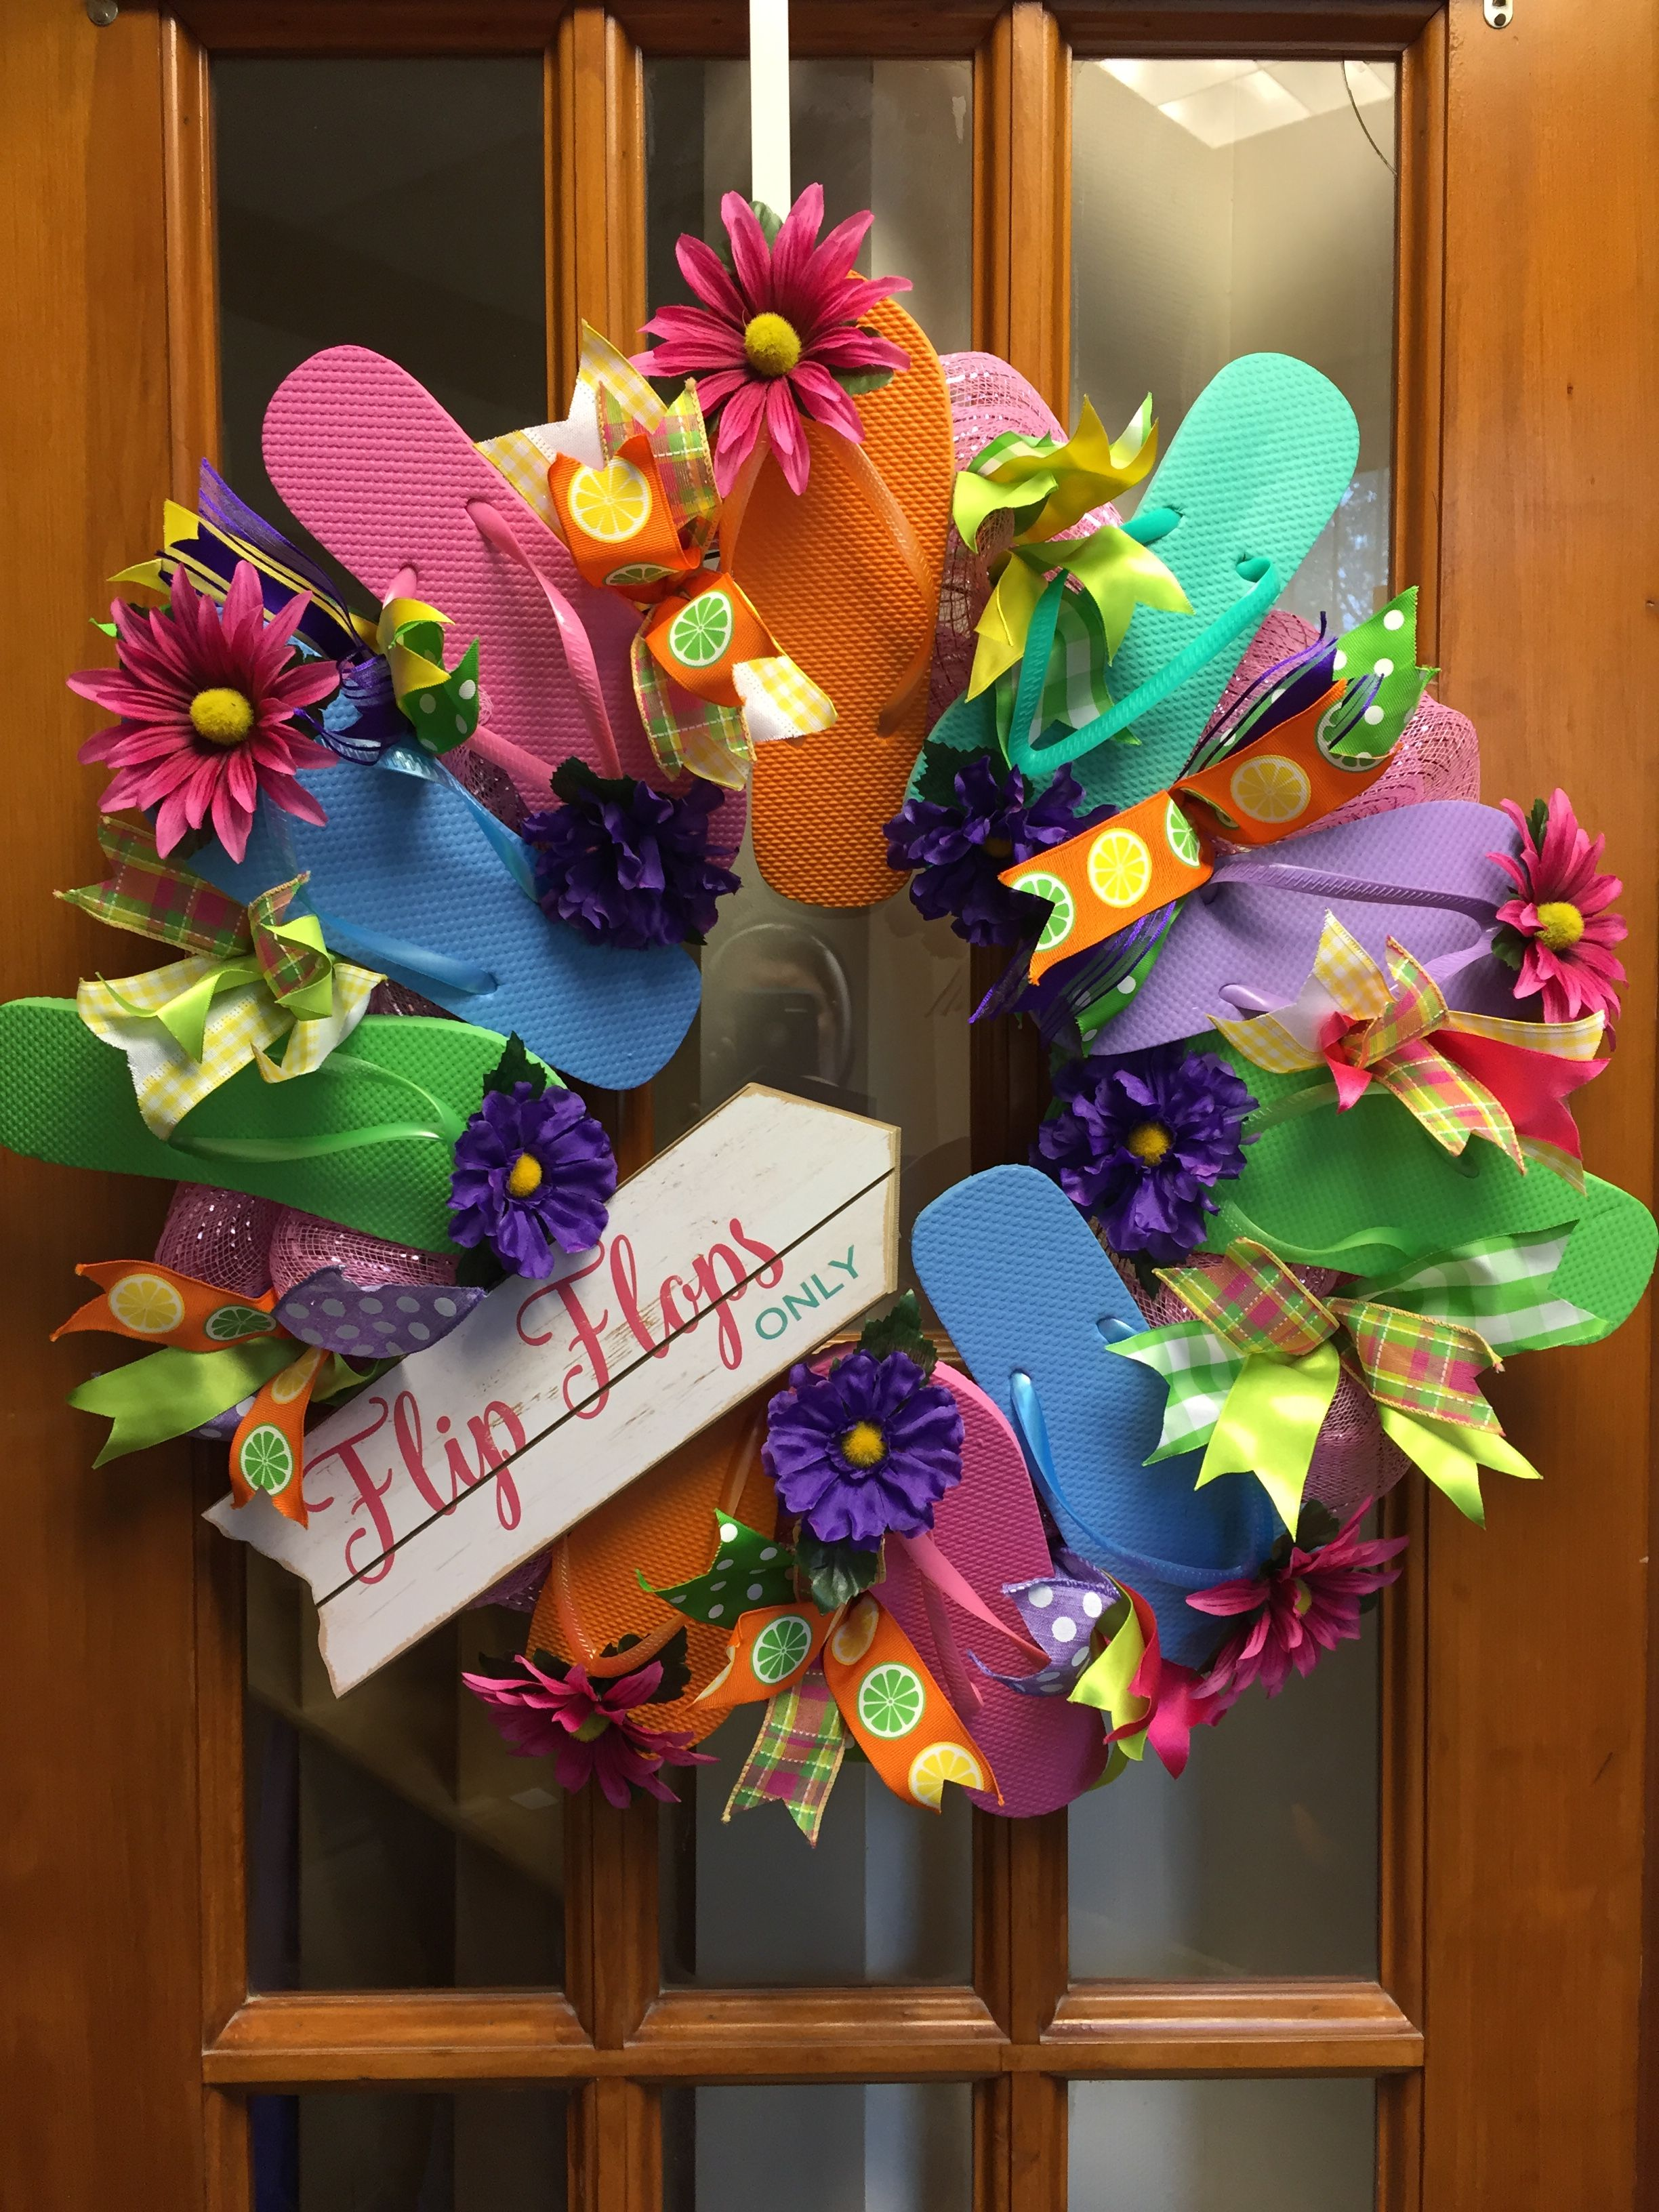 This Flip Flop Wreath was created with the help of my Kindergarten class.